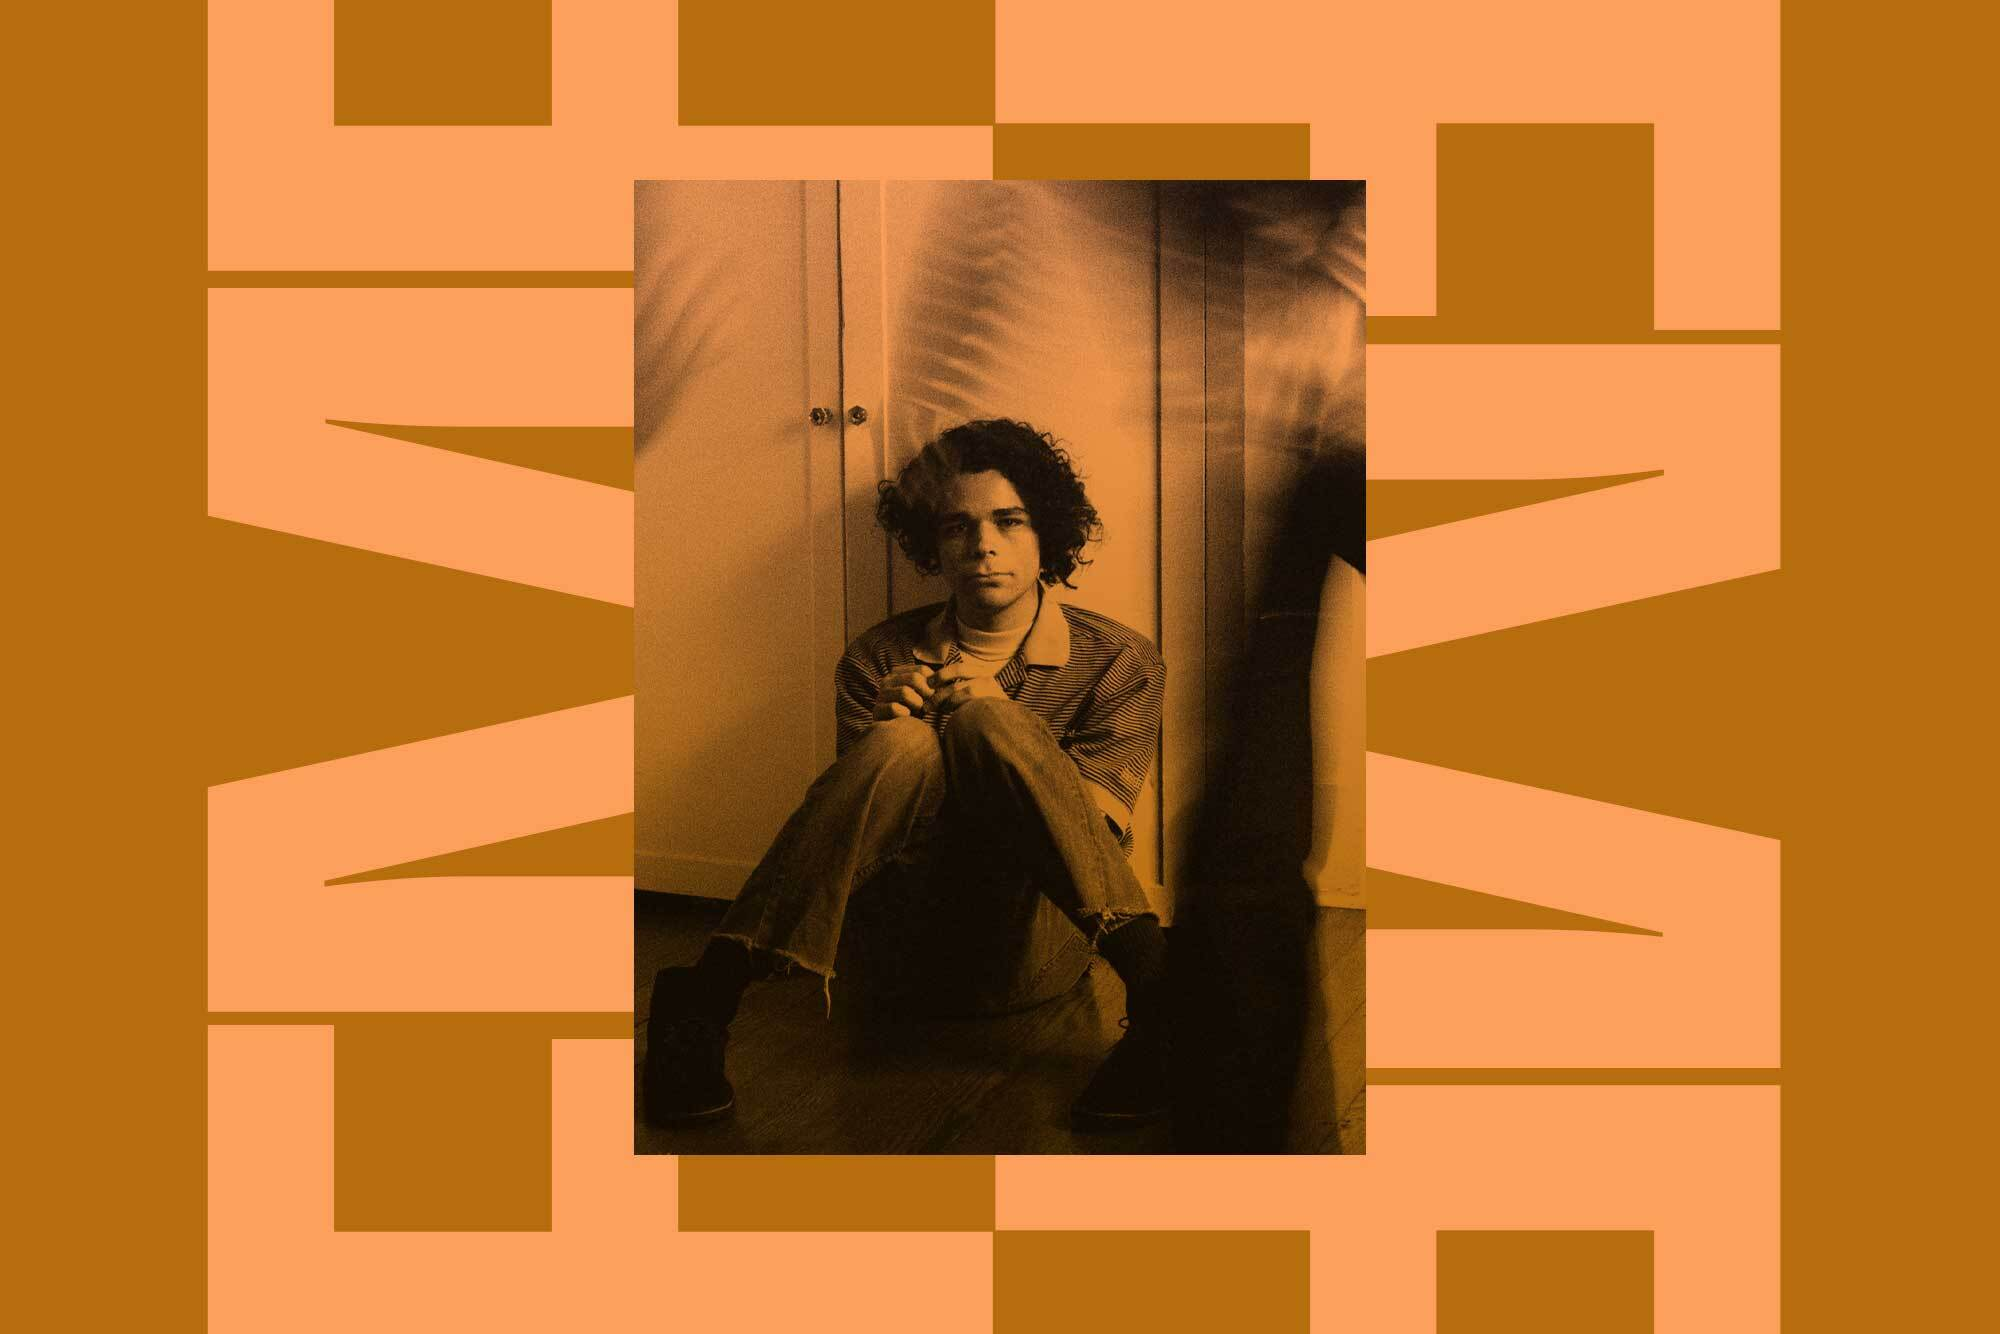 FRESH MUSIC FRIDAY: Charlie Hickey, Leon Bridges, Shakey Graves, and More